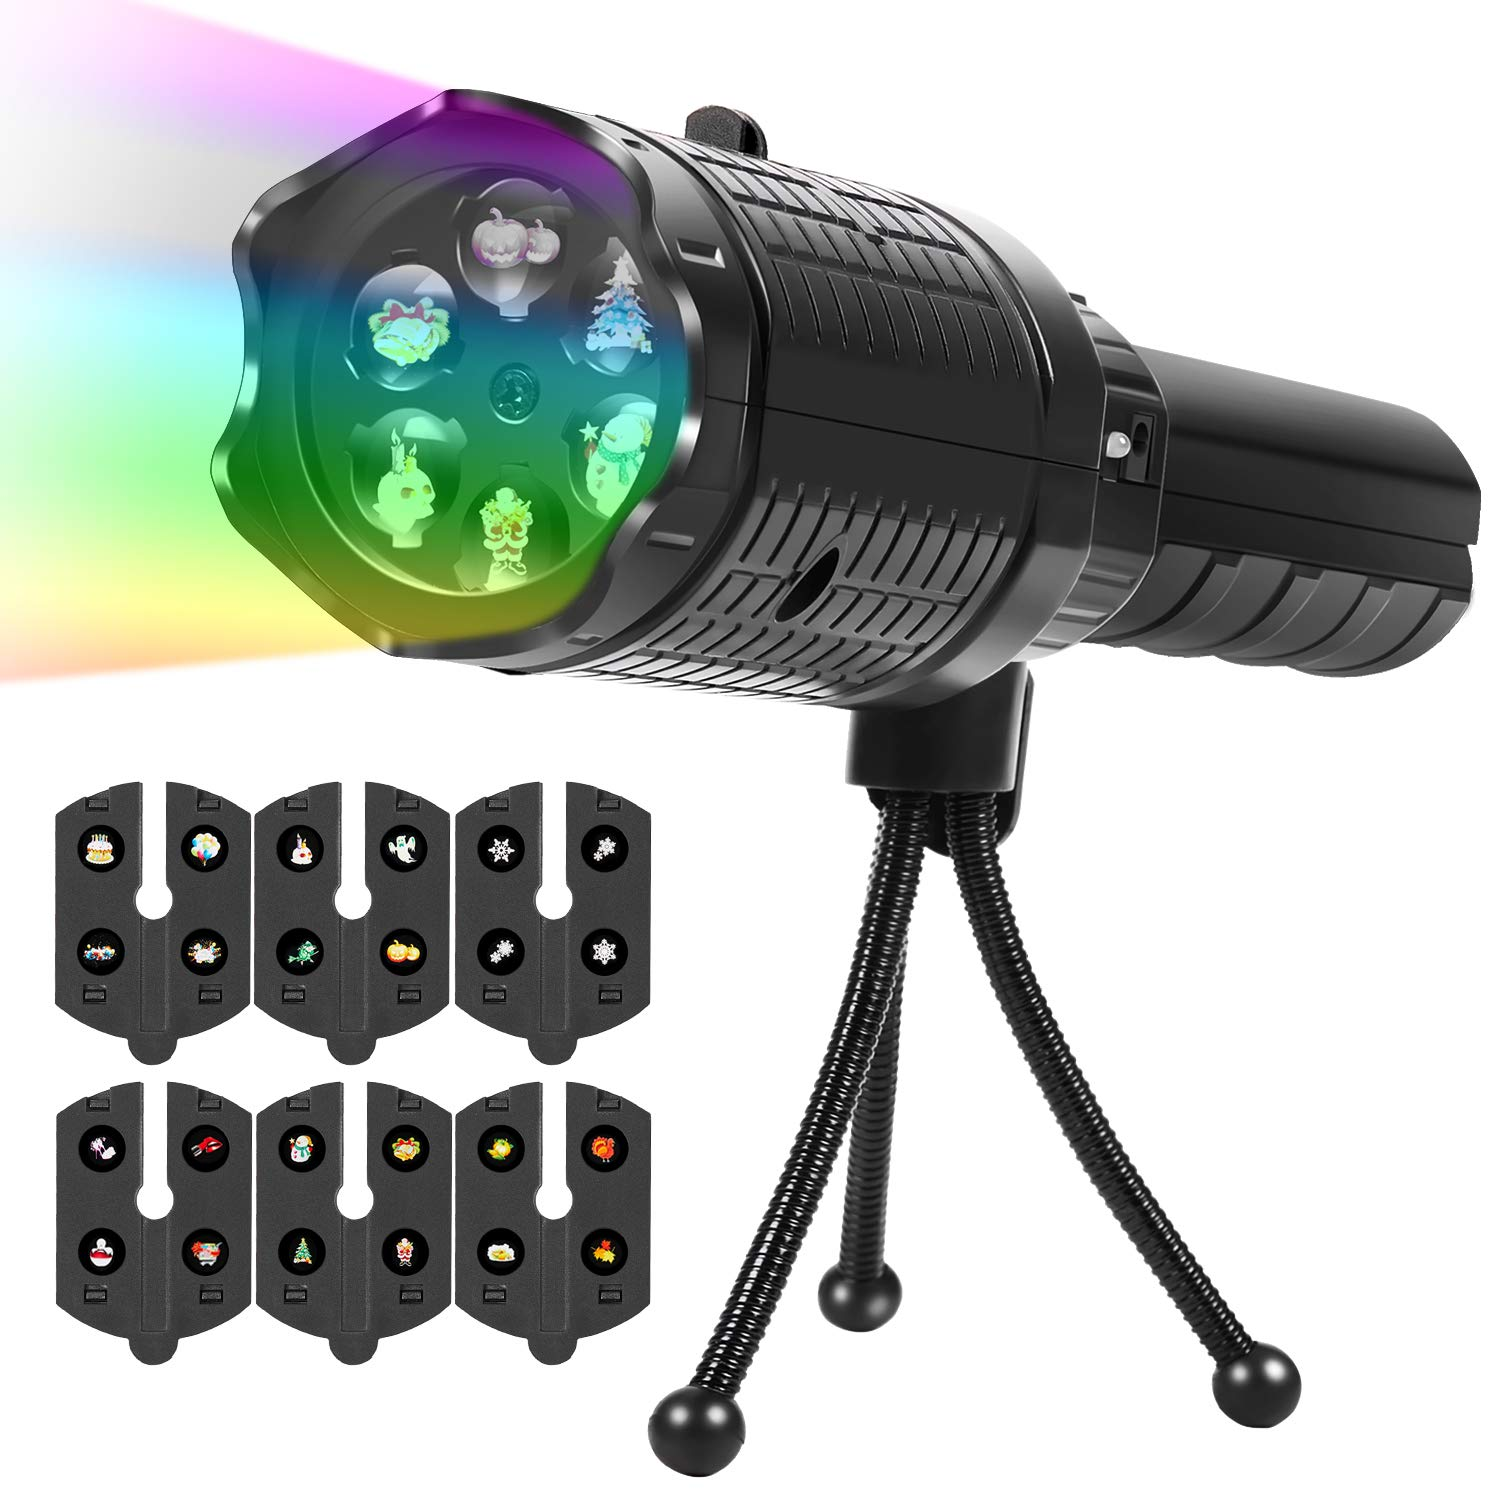 Upperx LED Projector Lights, 6 Slides Projection Portable Rotating Holiday Lights with Tripod, Battery-Operated 2 in 1 Decoration Light &Handheld Flashlight for Party,Birthday,Christmas,Halloween,East